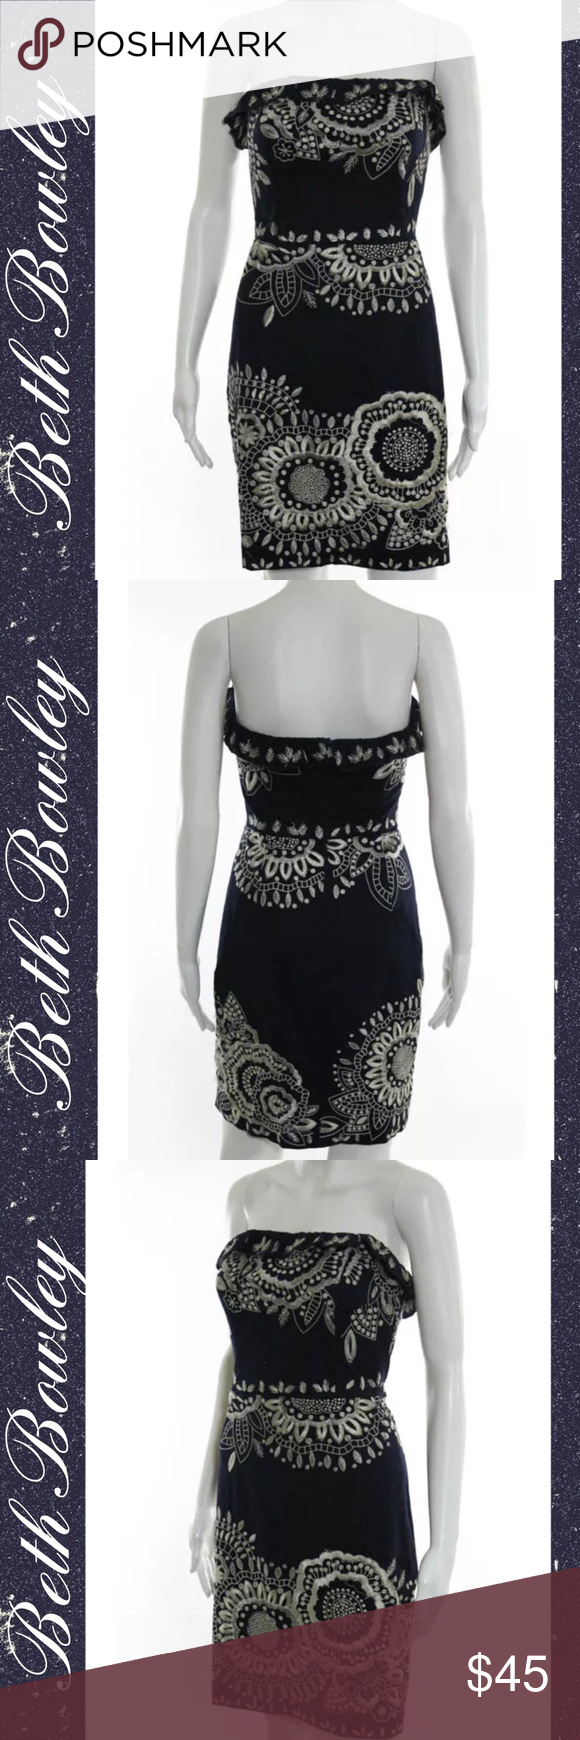 """BETH BOWLEY Classy Navy/White Embroidered Dress SIZE 6. 35"""" Length. 26"""" Waist. 32"""" Bust. 100% Cotton. Strapless w Ruffled Hemline. Back Zipper Closure. Deep Navy Blue Color w White Embroidered Floral Designs. EUC Beth Bowley Dresses Strapless"""